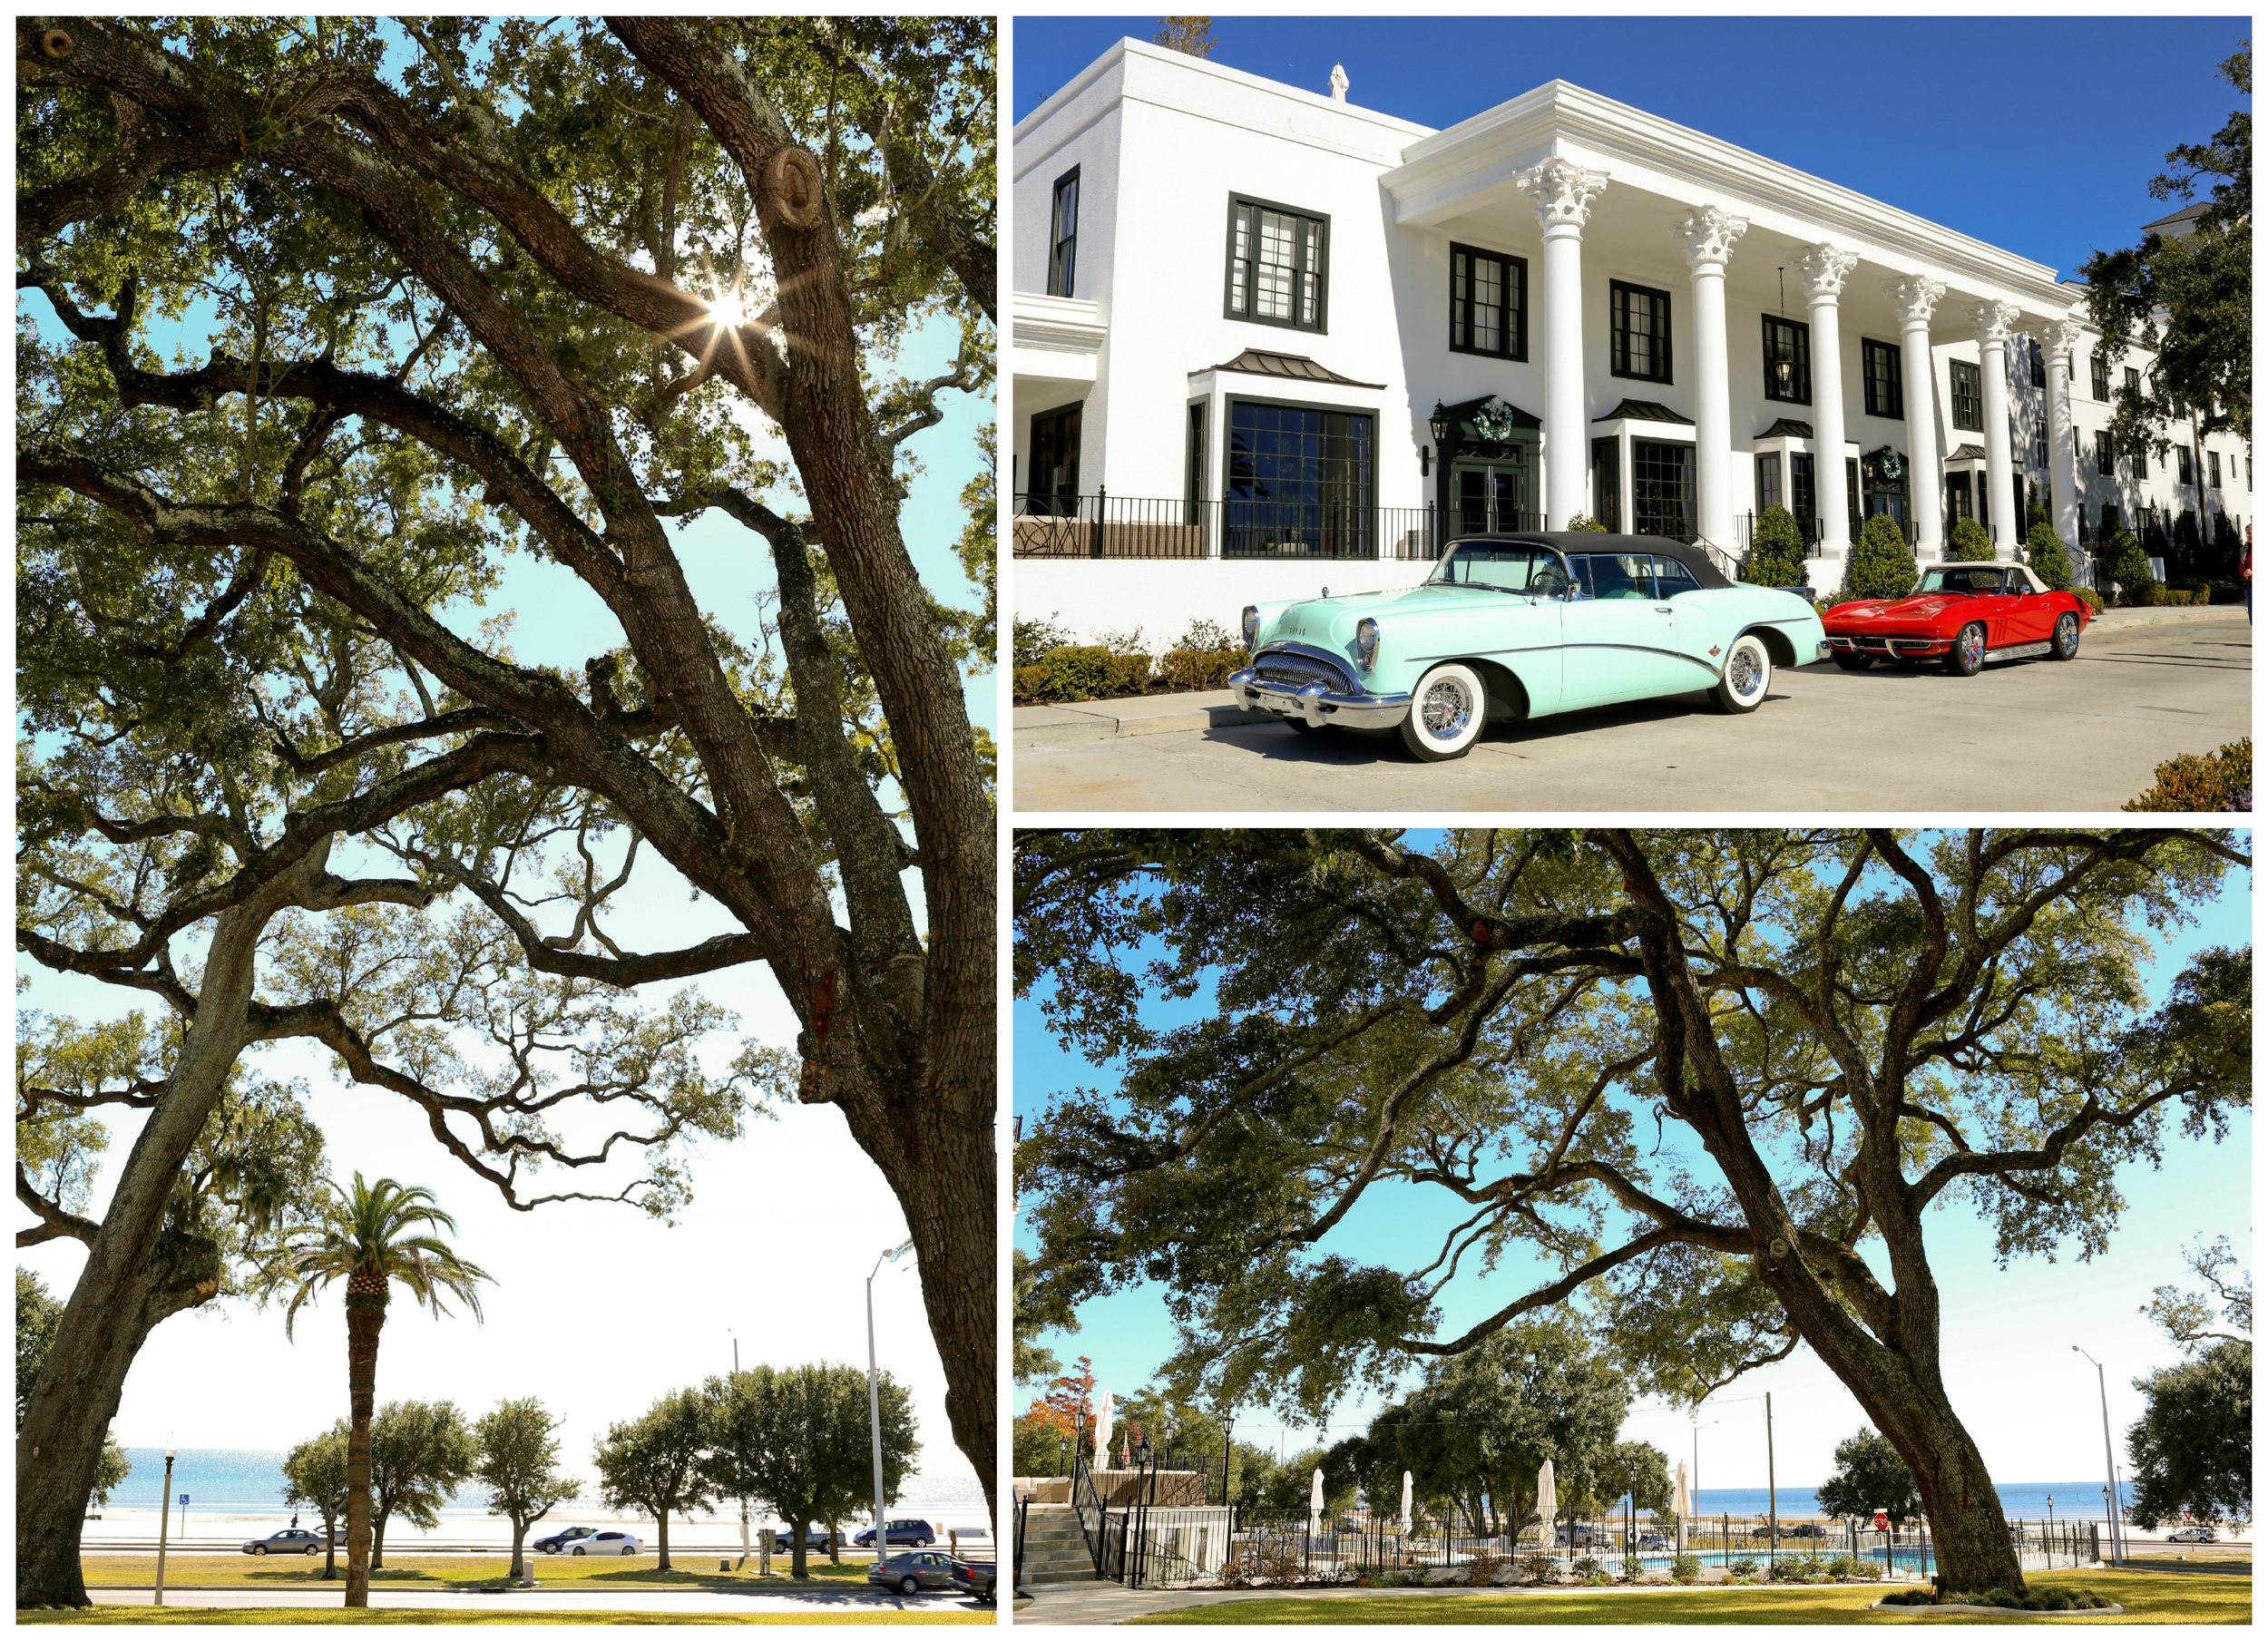 White House Hotel Biloxi exterior with cars and live oak trees